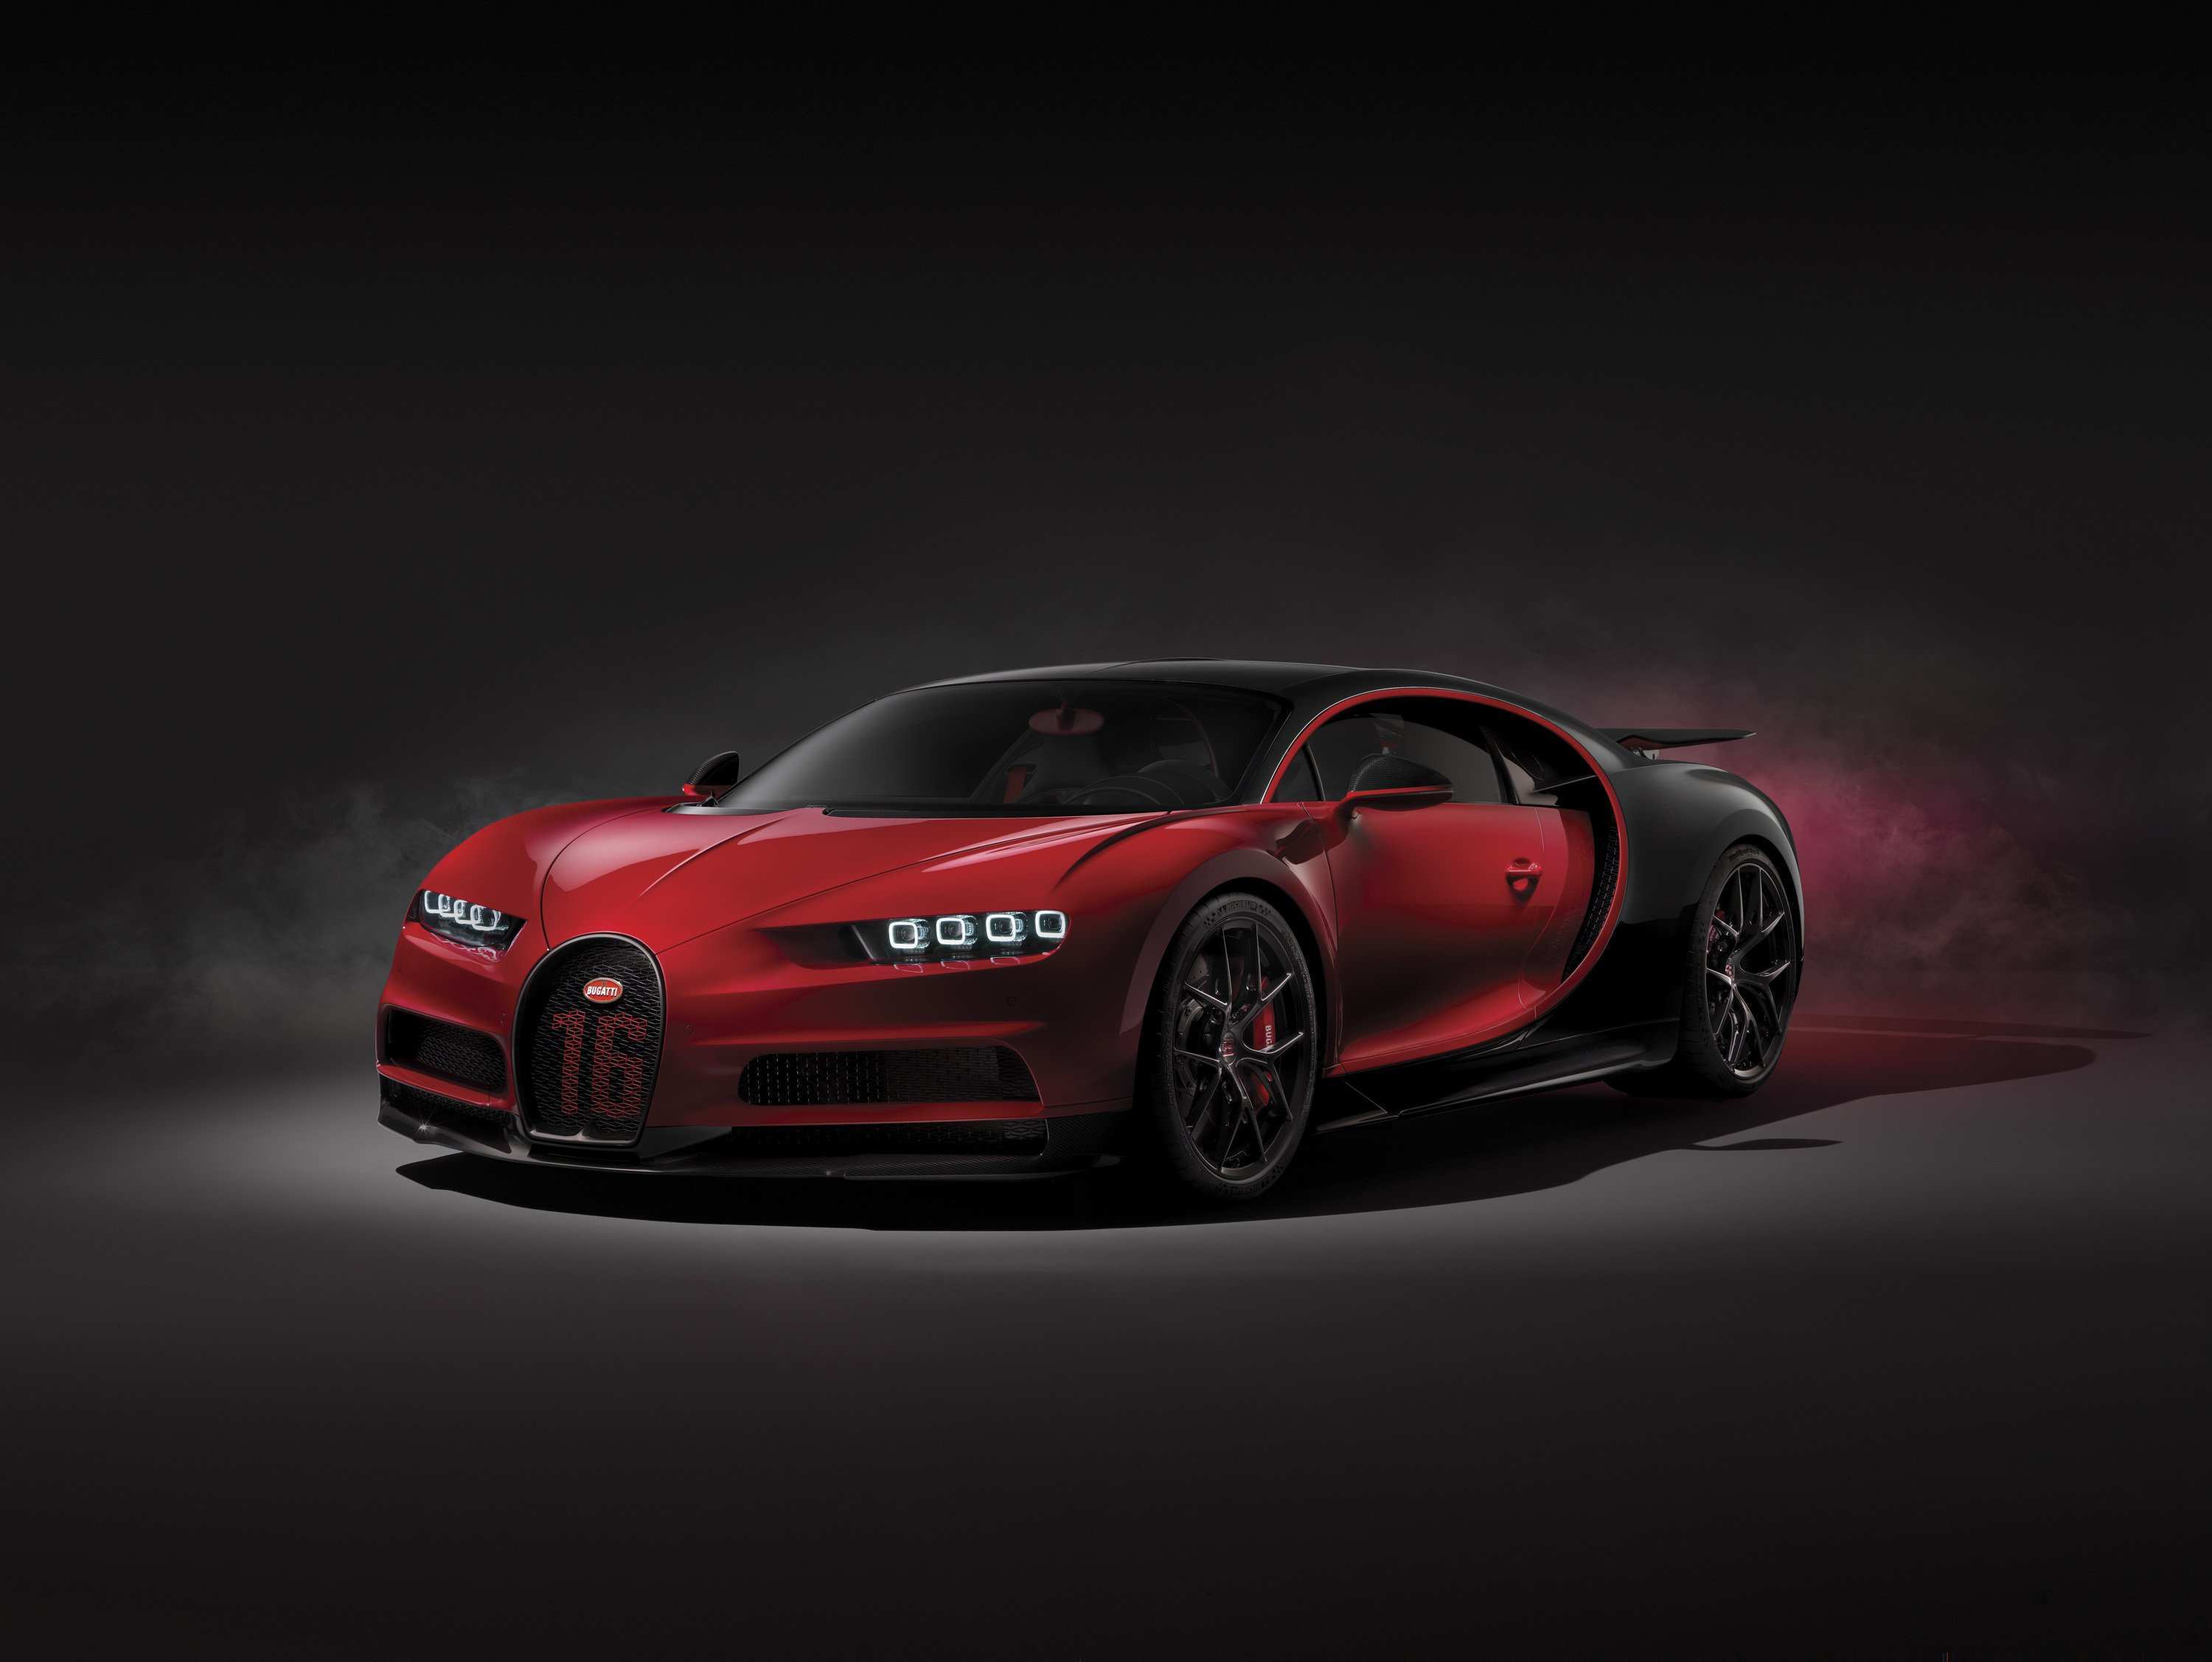 63 Gallery of 2019 Bugatti Veyron Top Speed Speed Test with 2019 Bugatti Veyron Top Speed